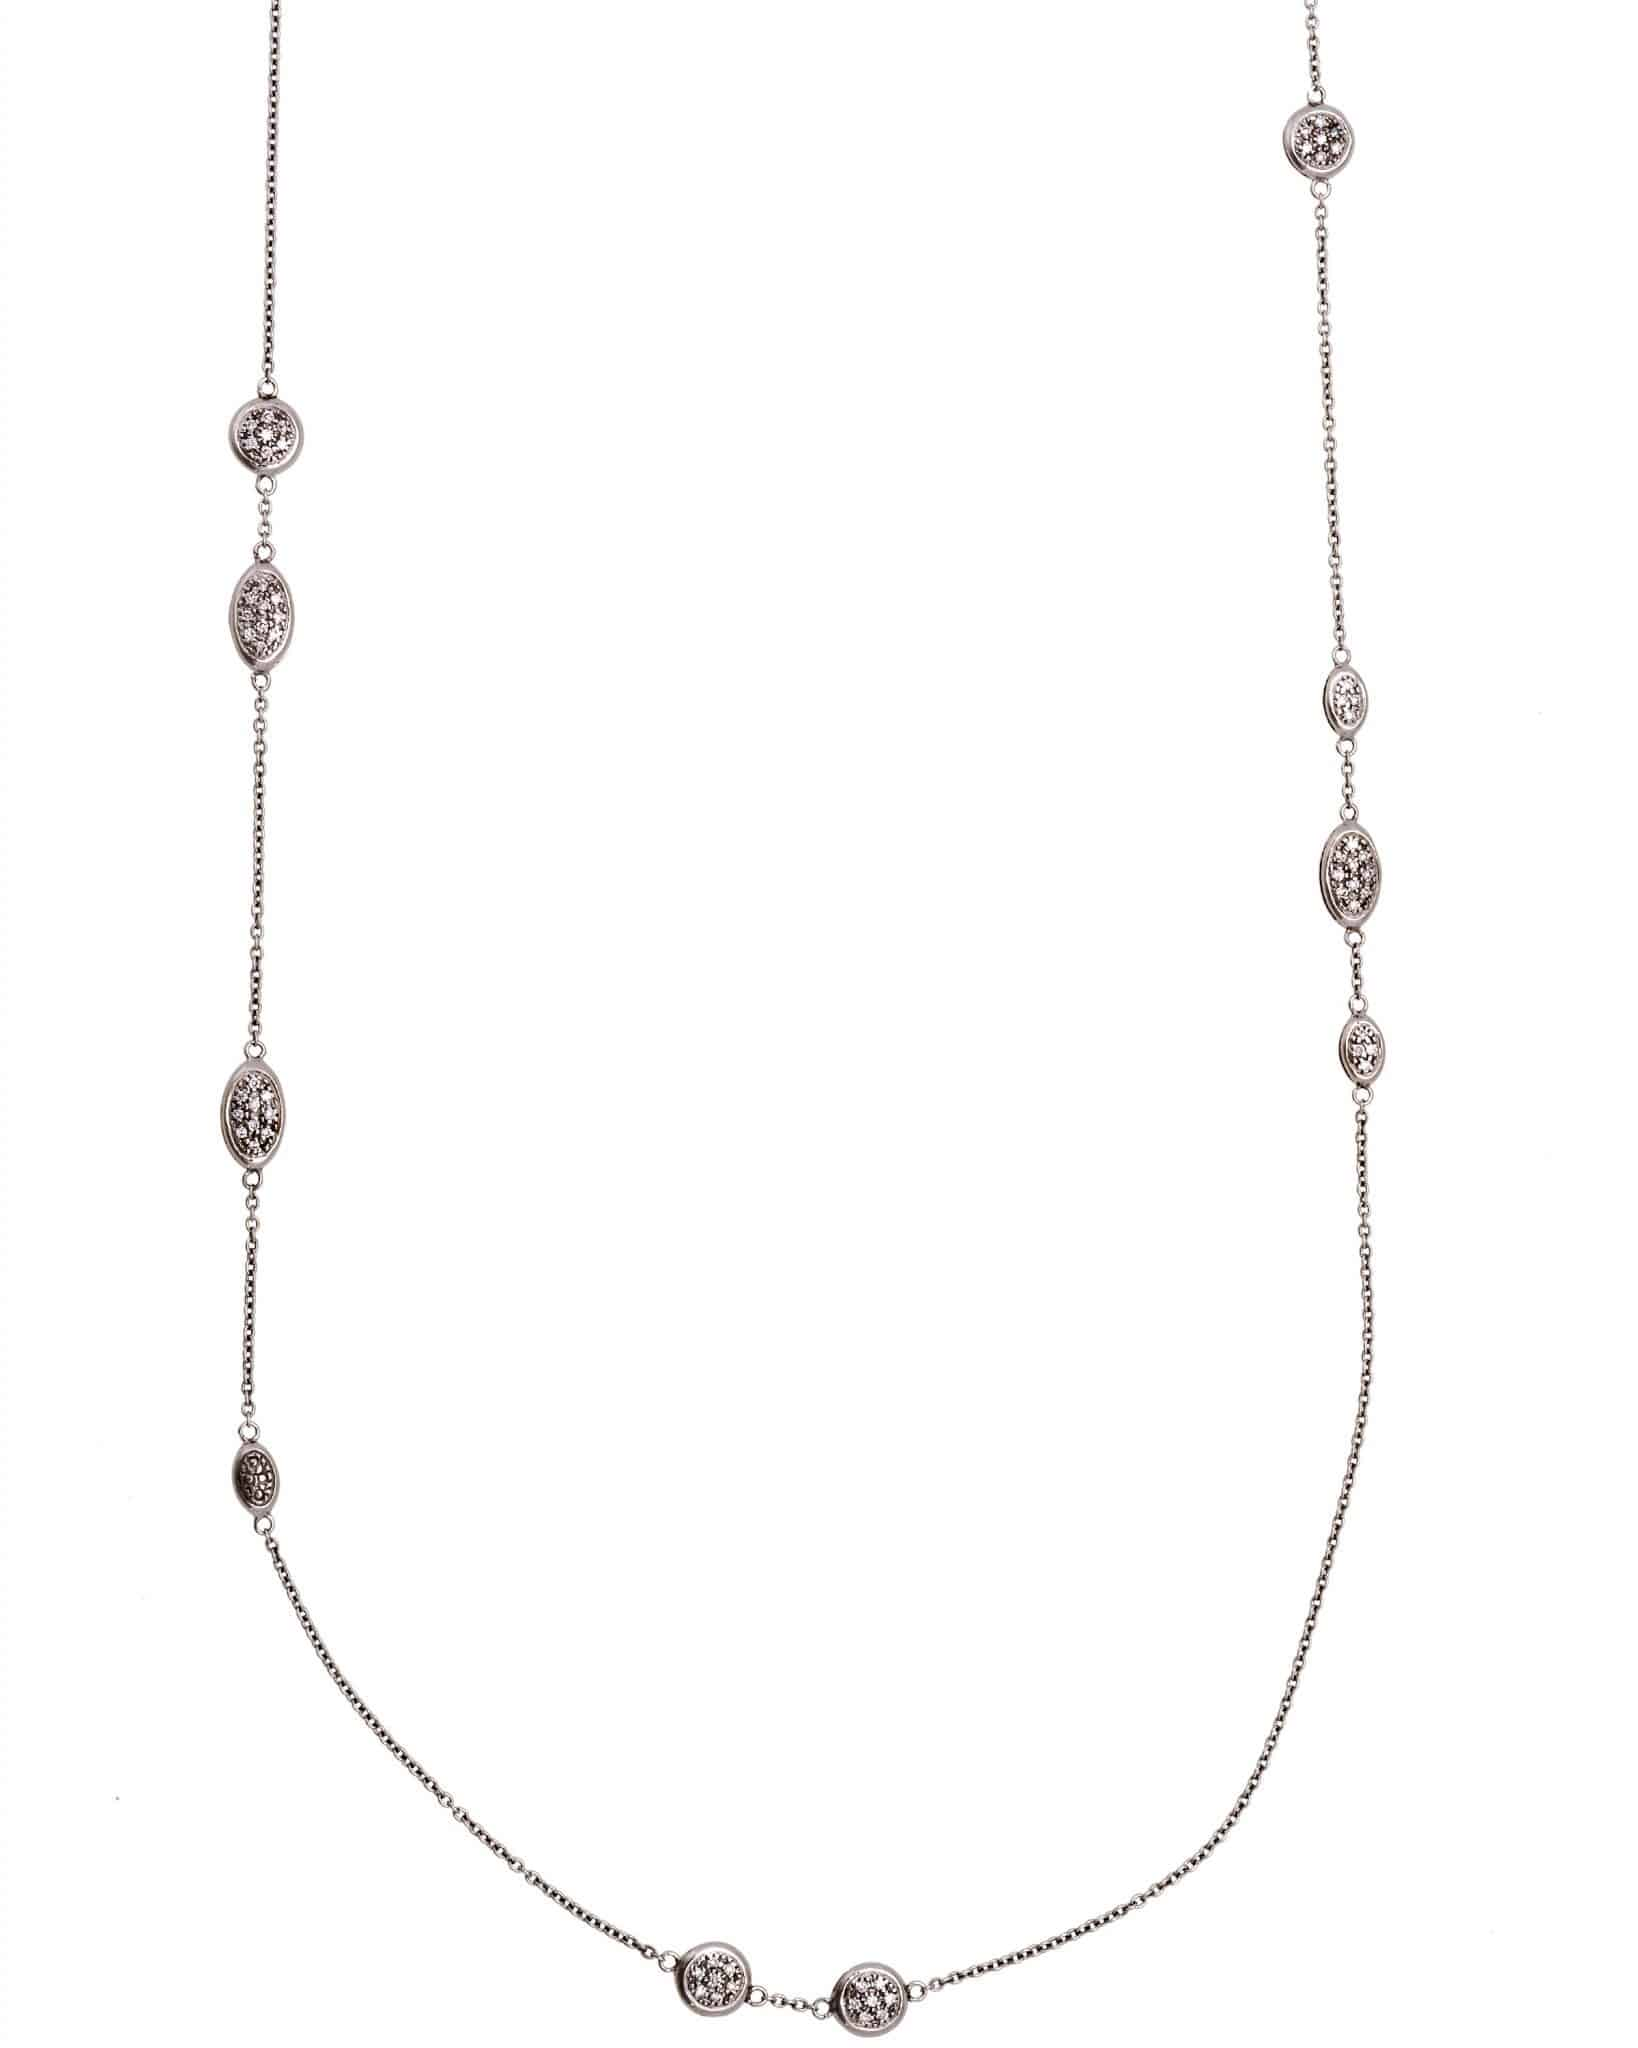 Roberto Coin 18K White Gold Diamond Necklace